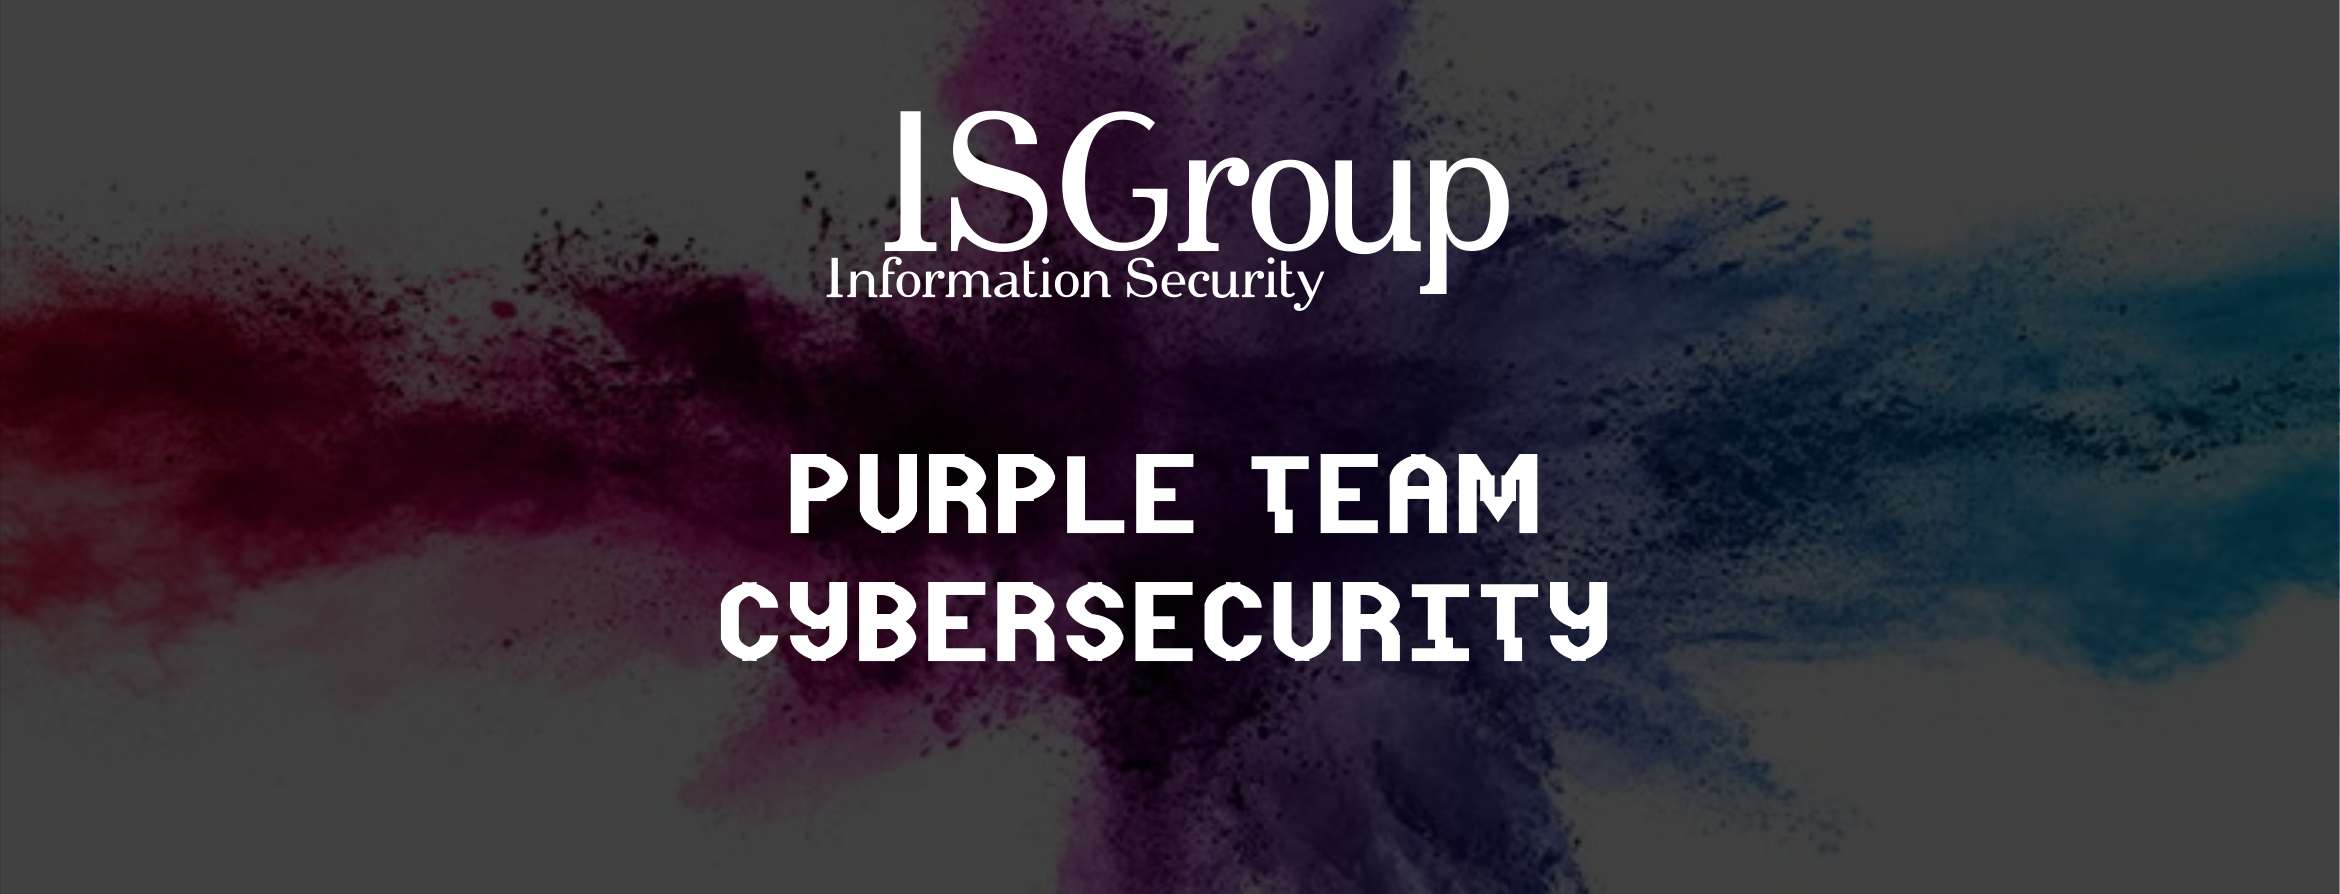 Purple Team Cybersecurity